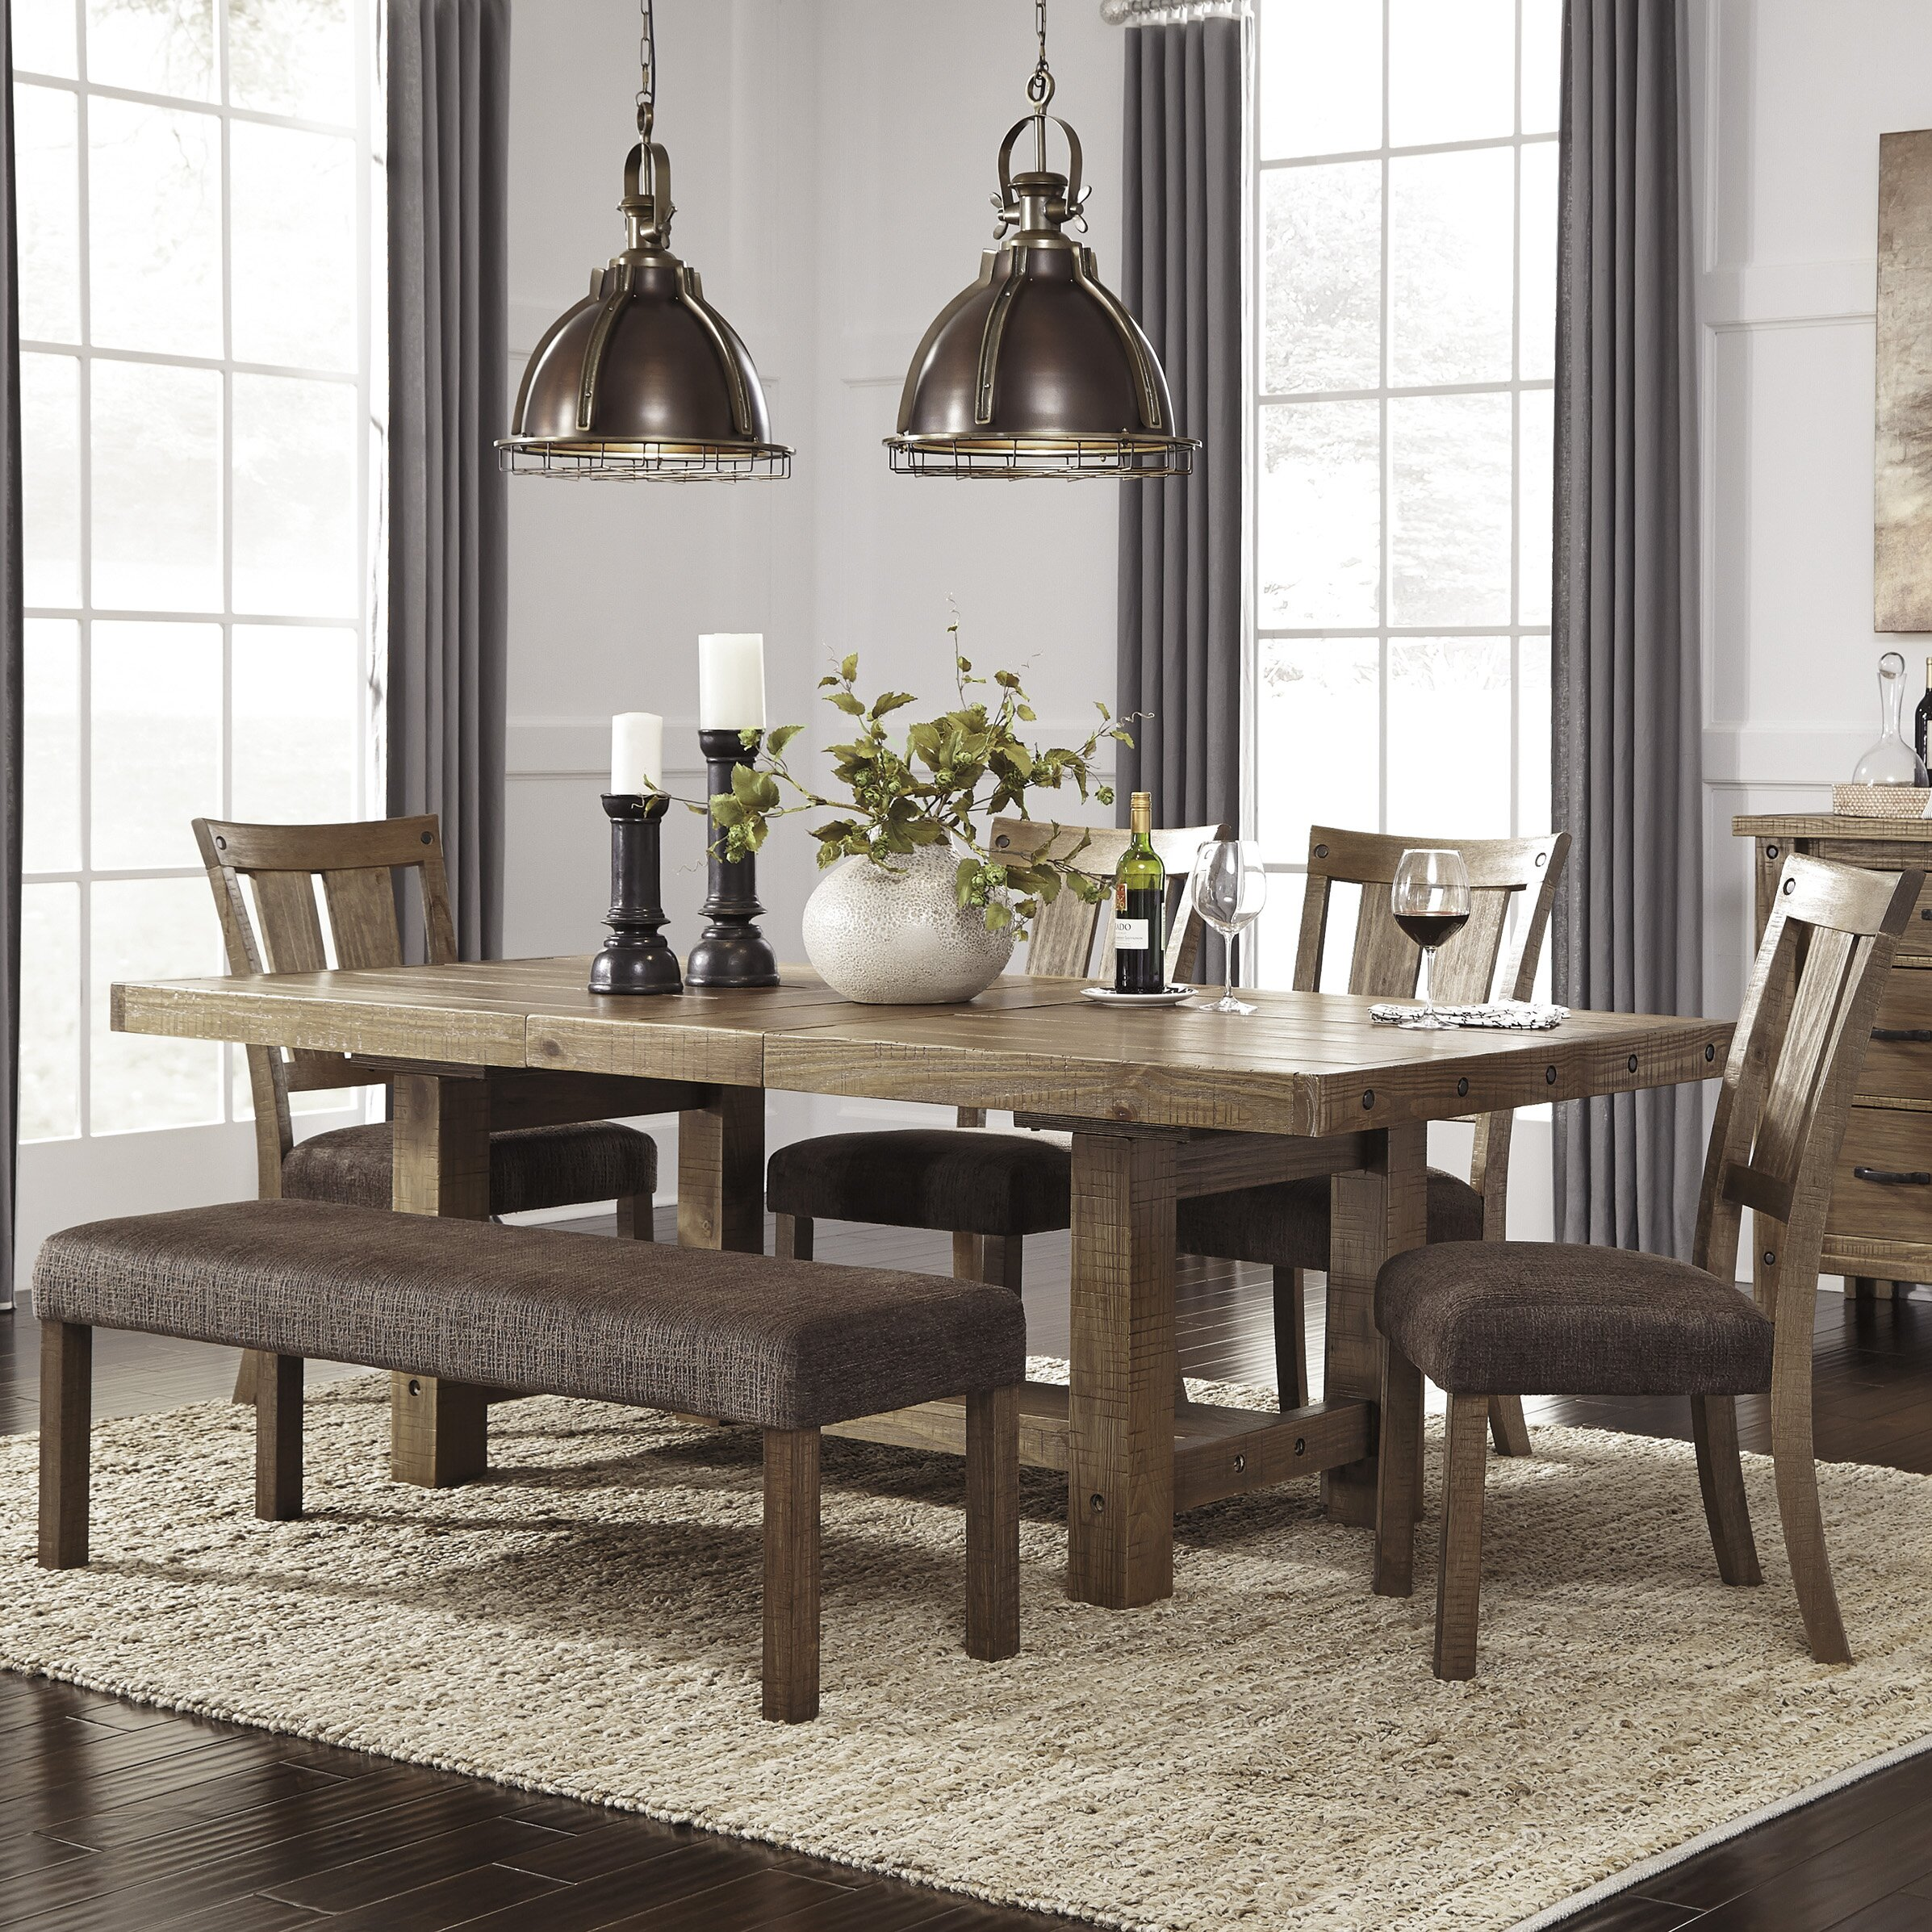 Signature design by ashley 9 piece dining set reviews for Dinette furniture